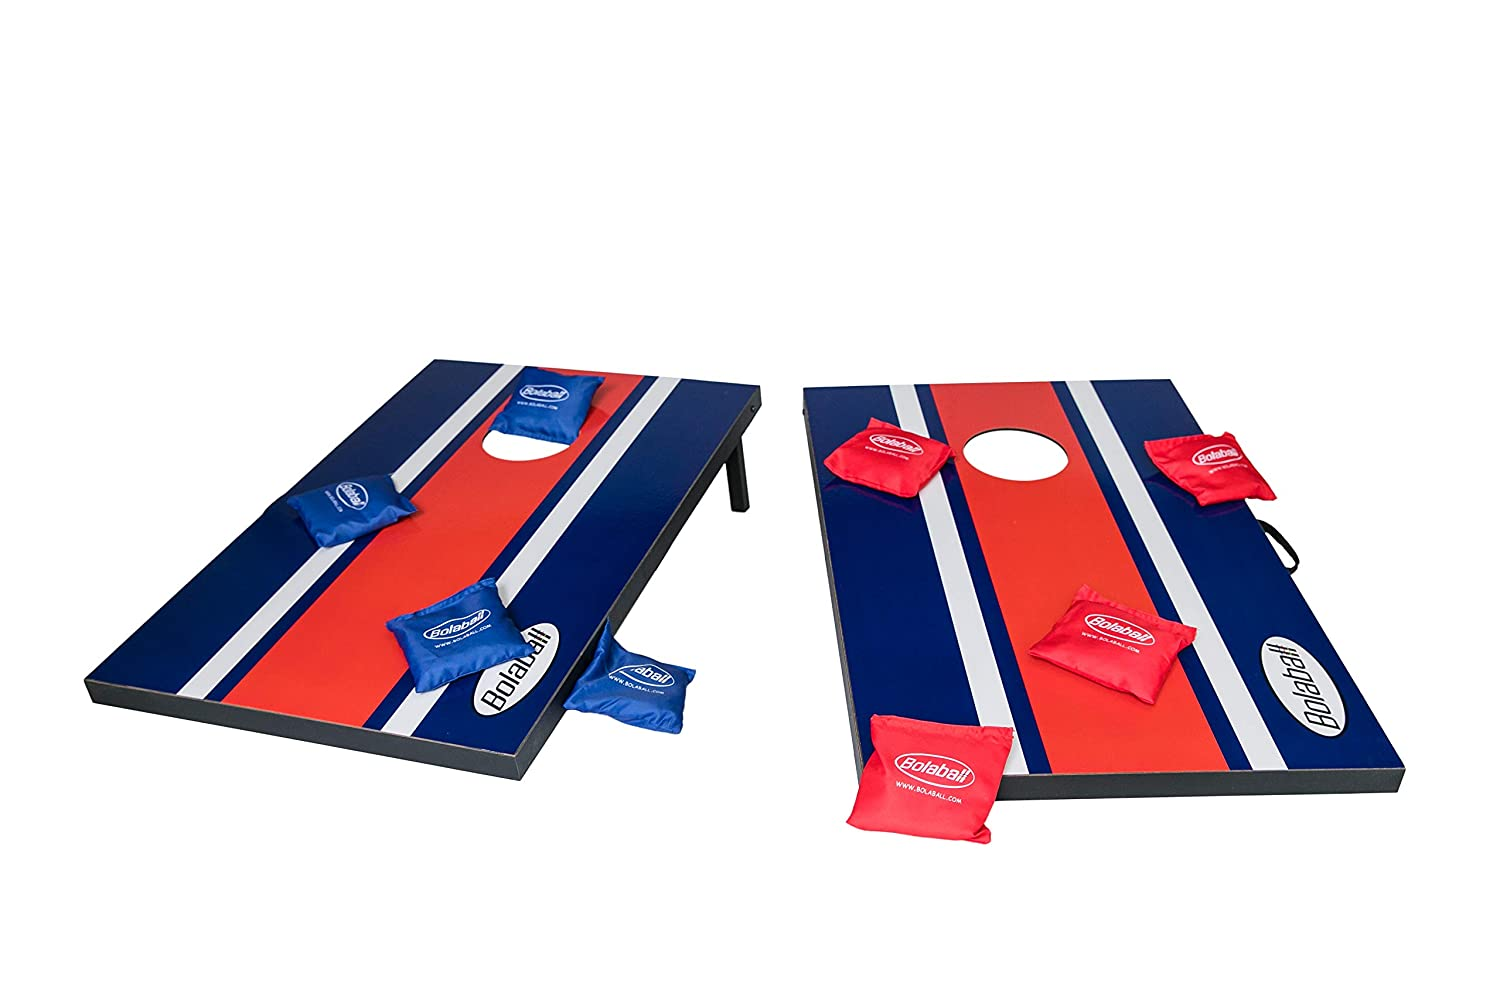 Amazon.com: Bolaball Bean Bag Toss, Cornhole Game Set, 8 Bean Bags, Portable with Handles, Perfect for Parties, Camping, Tailgating, 3ft x 2ft: Toys & Games